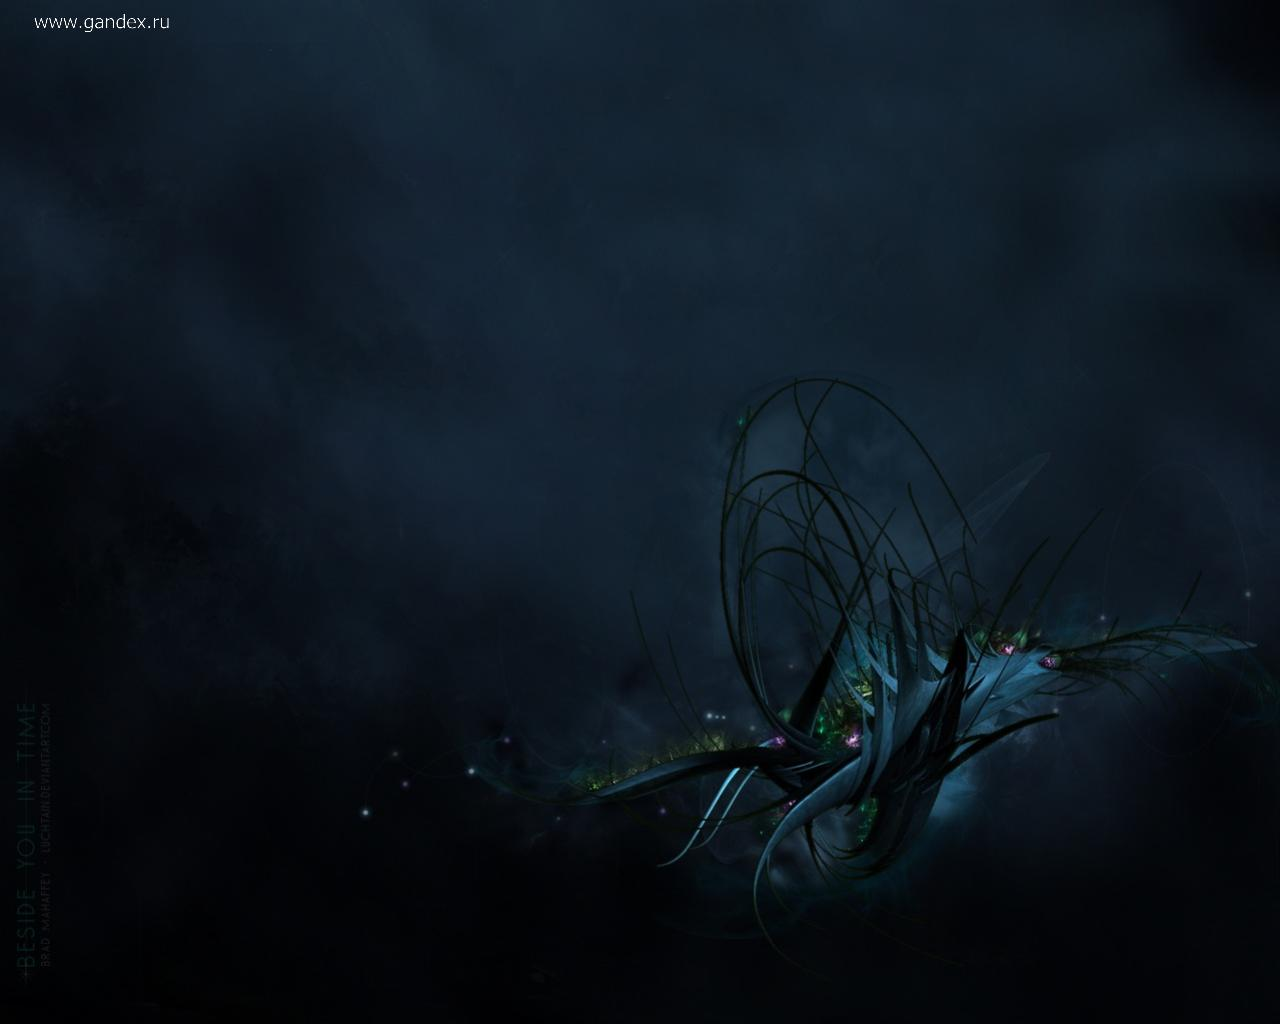 Very cool abstraction on a dark background, stylish and beautiful.